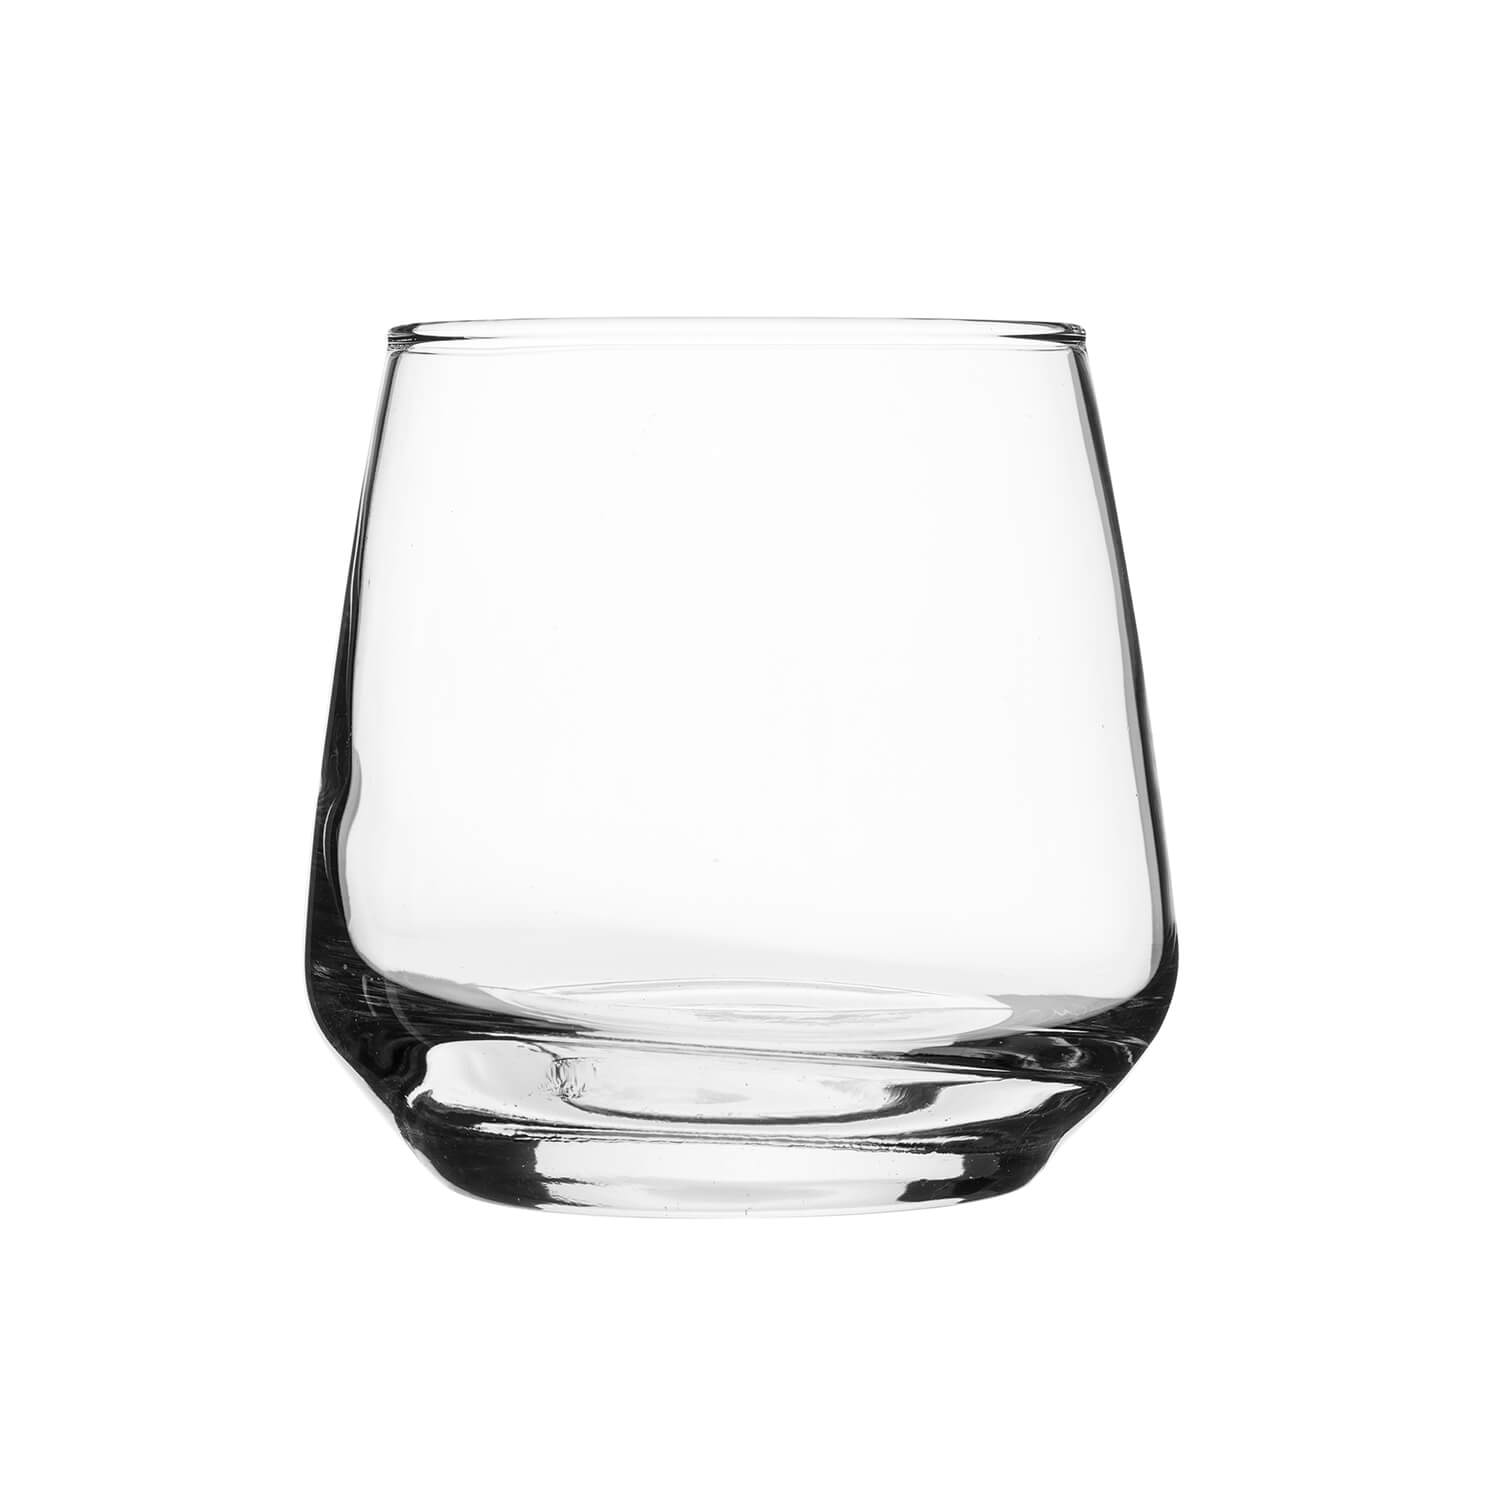 Majestic Mixer Glasses